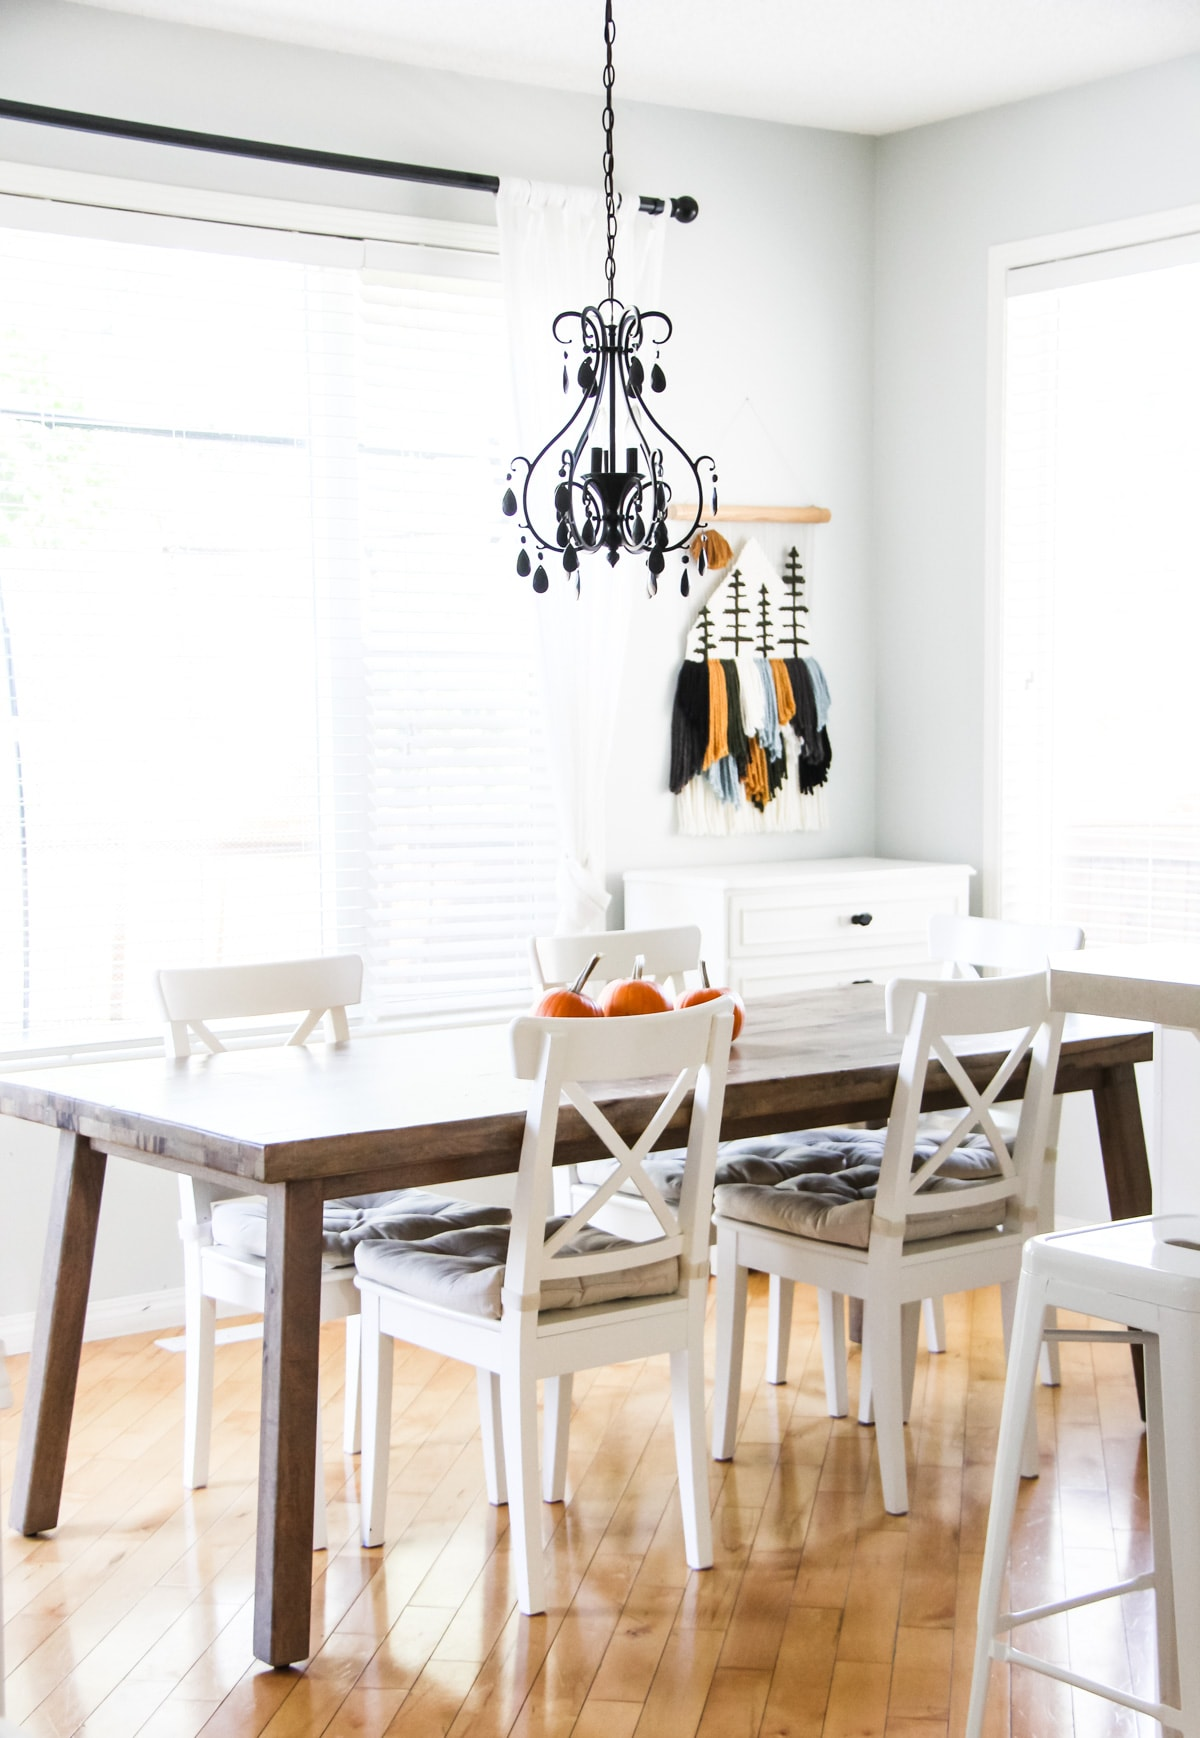 a wooden kitchen table decorated with three mini pumpkins. in the foreground is a black chandelier. in the background is a yarn wall hanging